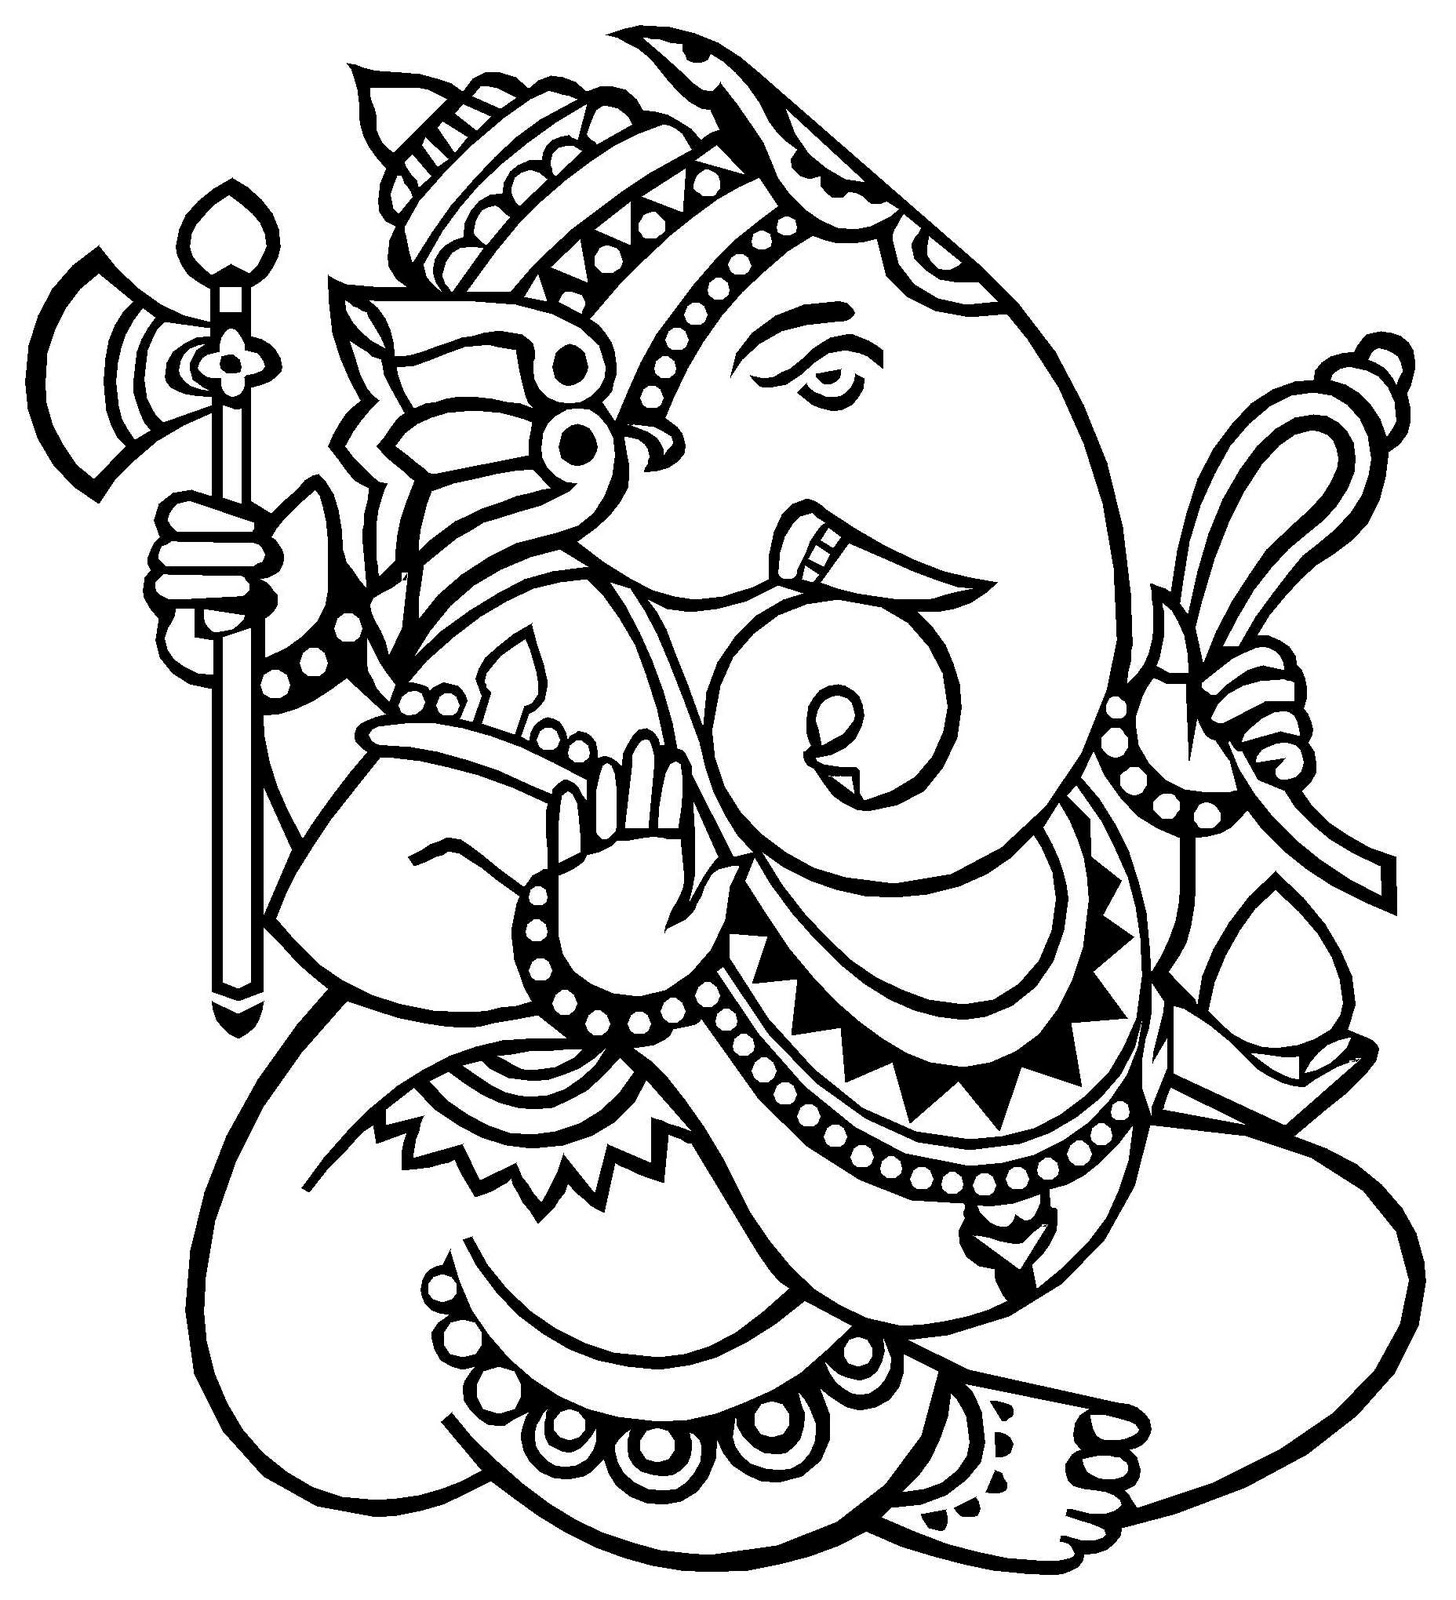 Line Art Ganesh Images : Ganesh line drawing clipart best